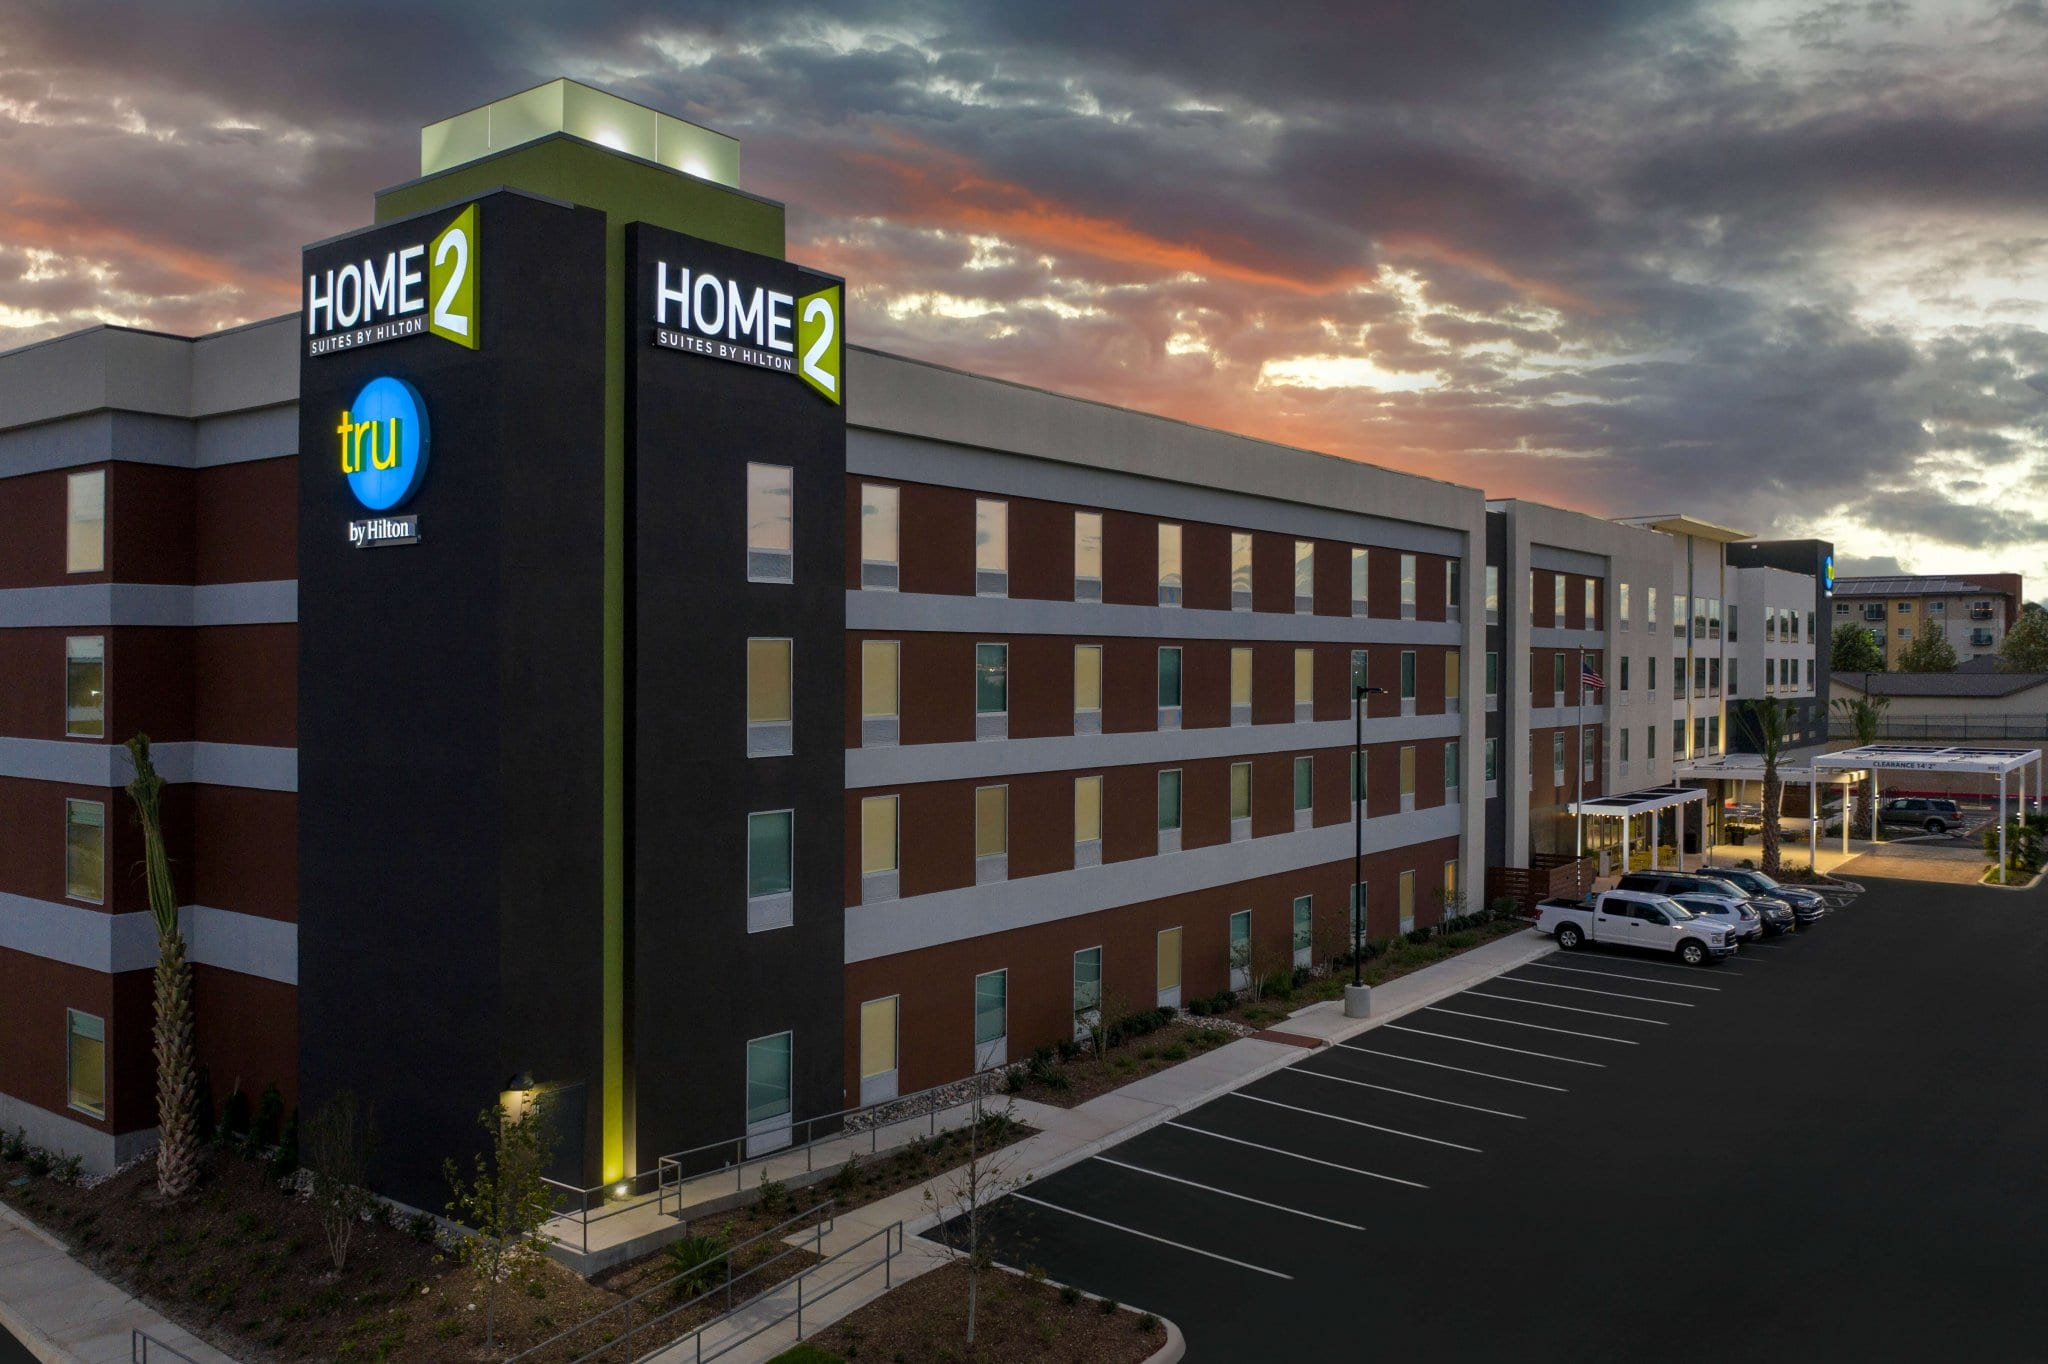 Home2 Suites by Hilton San Antonio Lackland/Seaworld